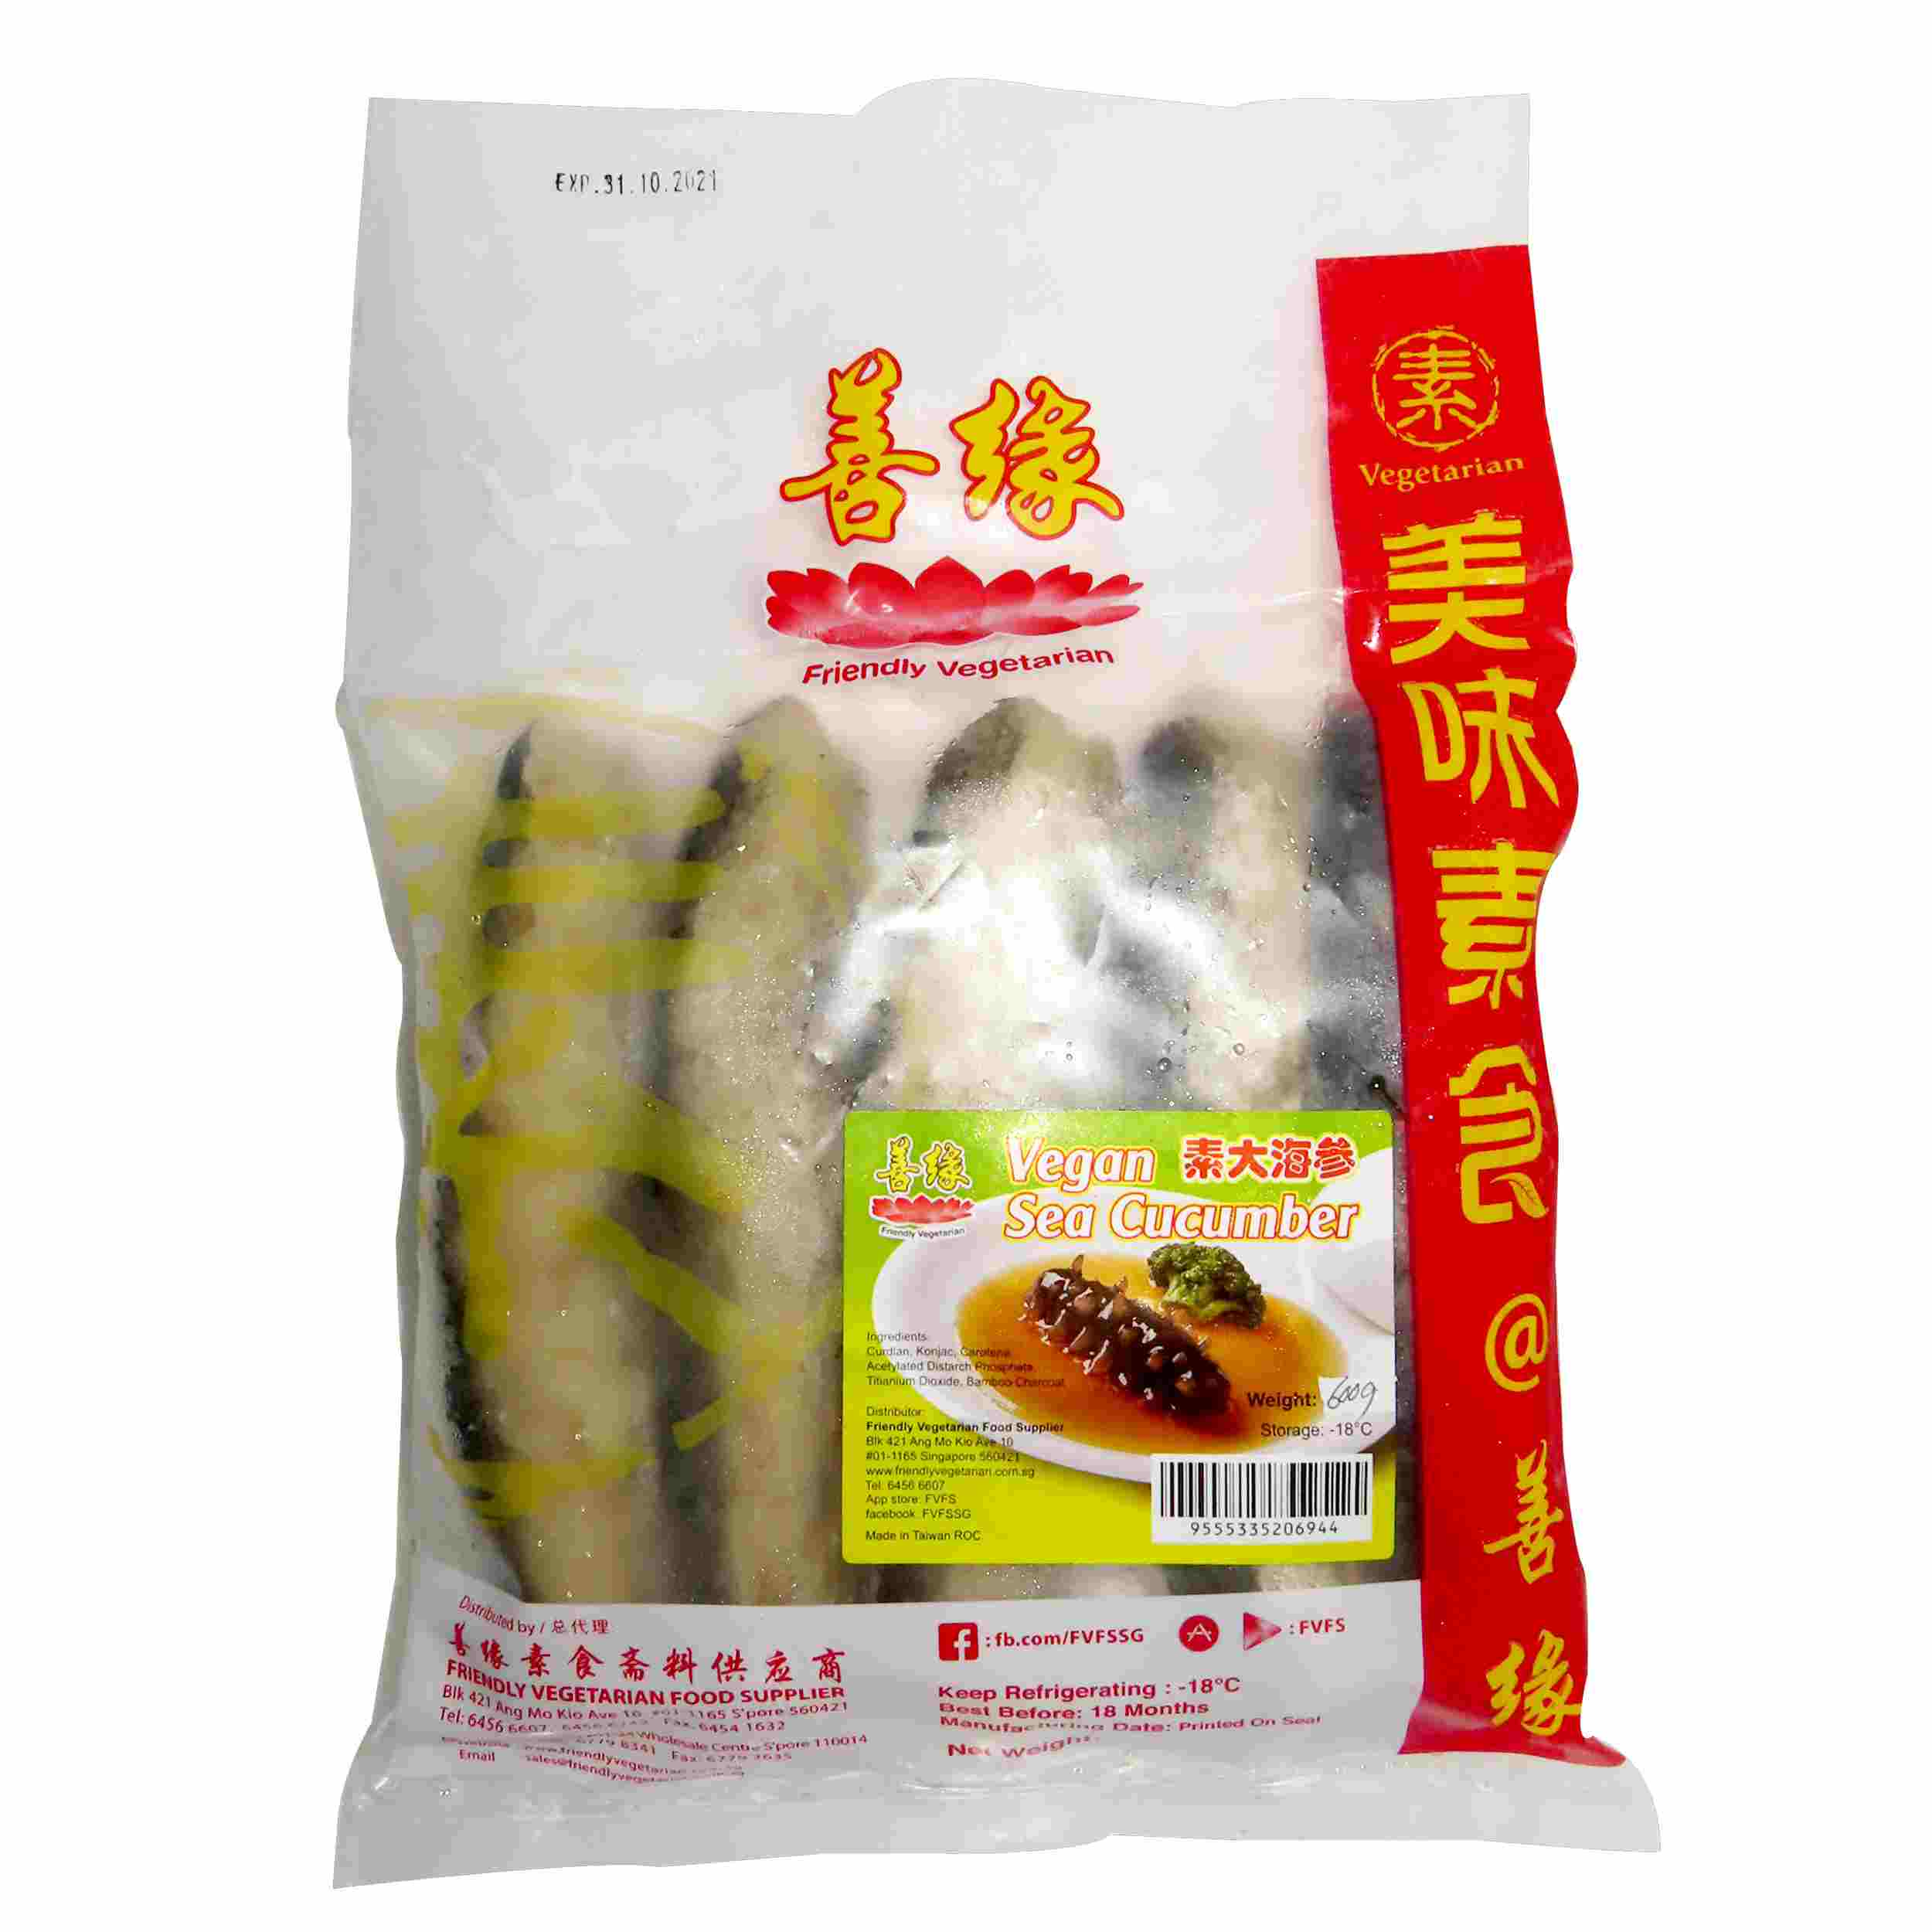 Image Vegan big sea Cucumber 善缘 - 大海参 560grams